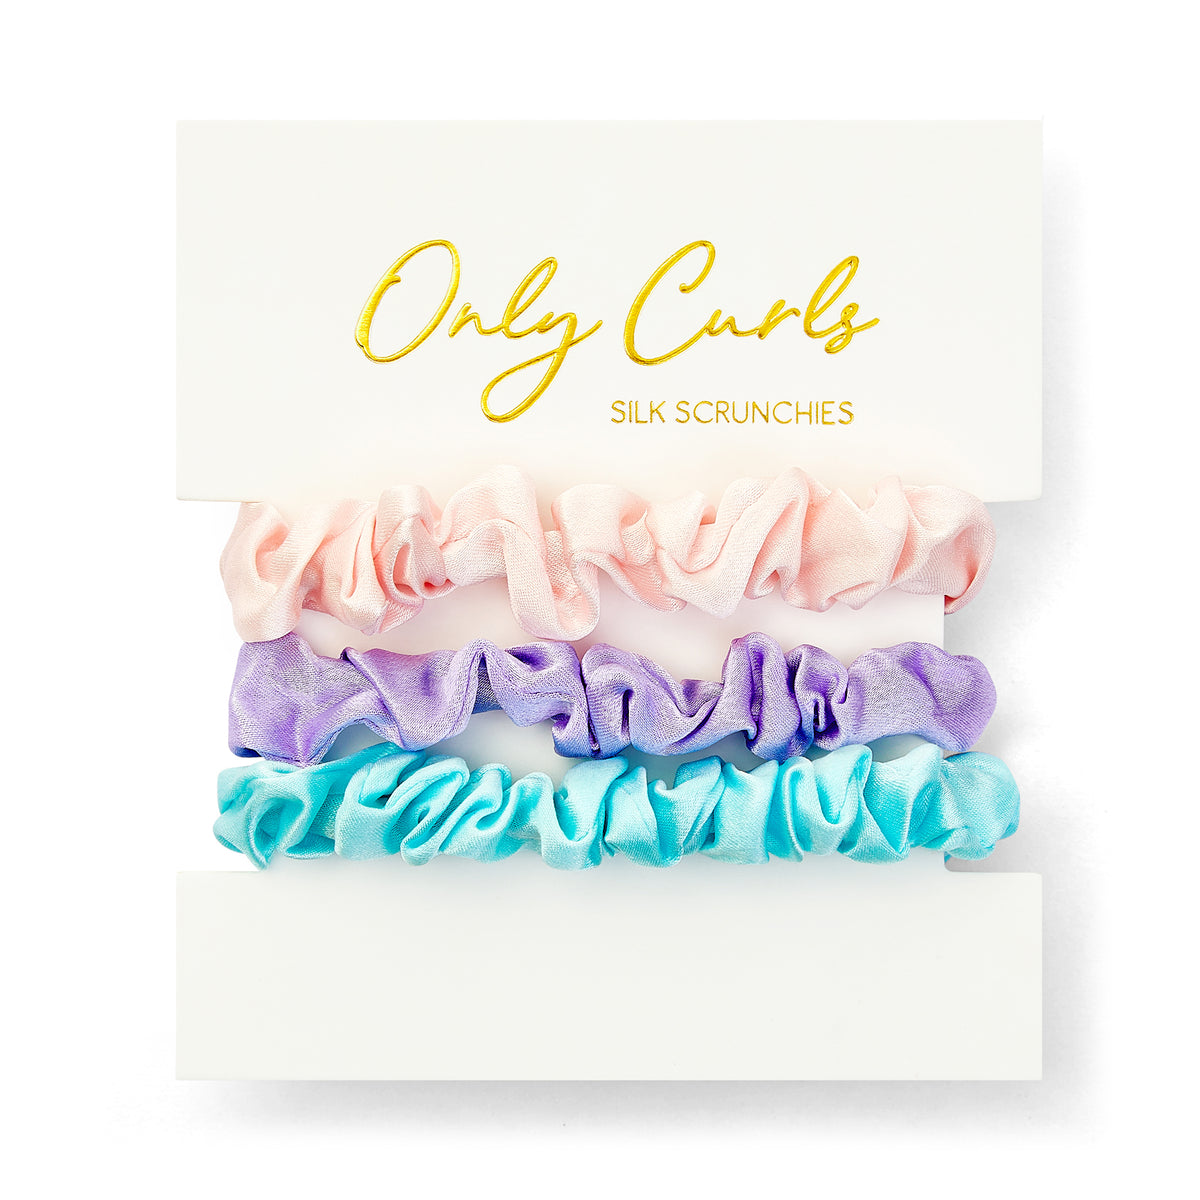 Only Curls Silk Scrunchies Multi Pack Mini - Aqua Lavender Pink - Only Curls